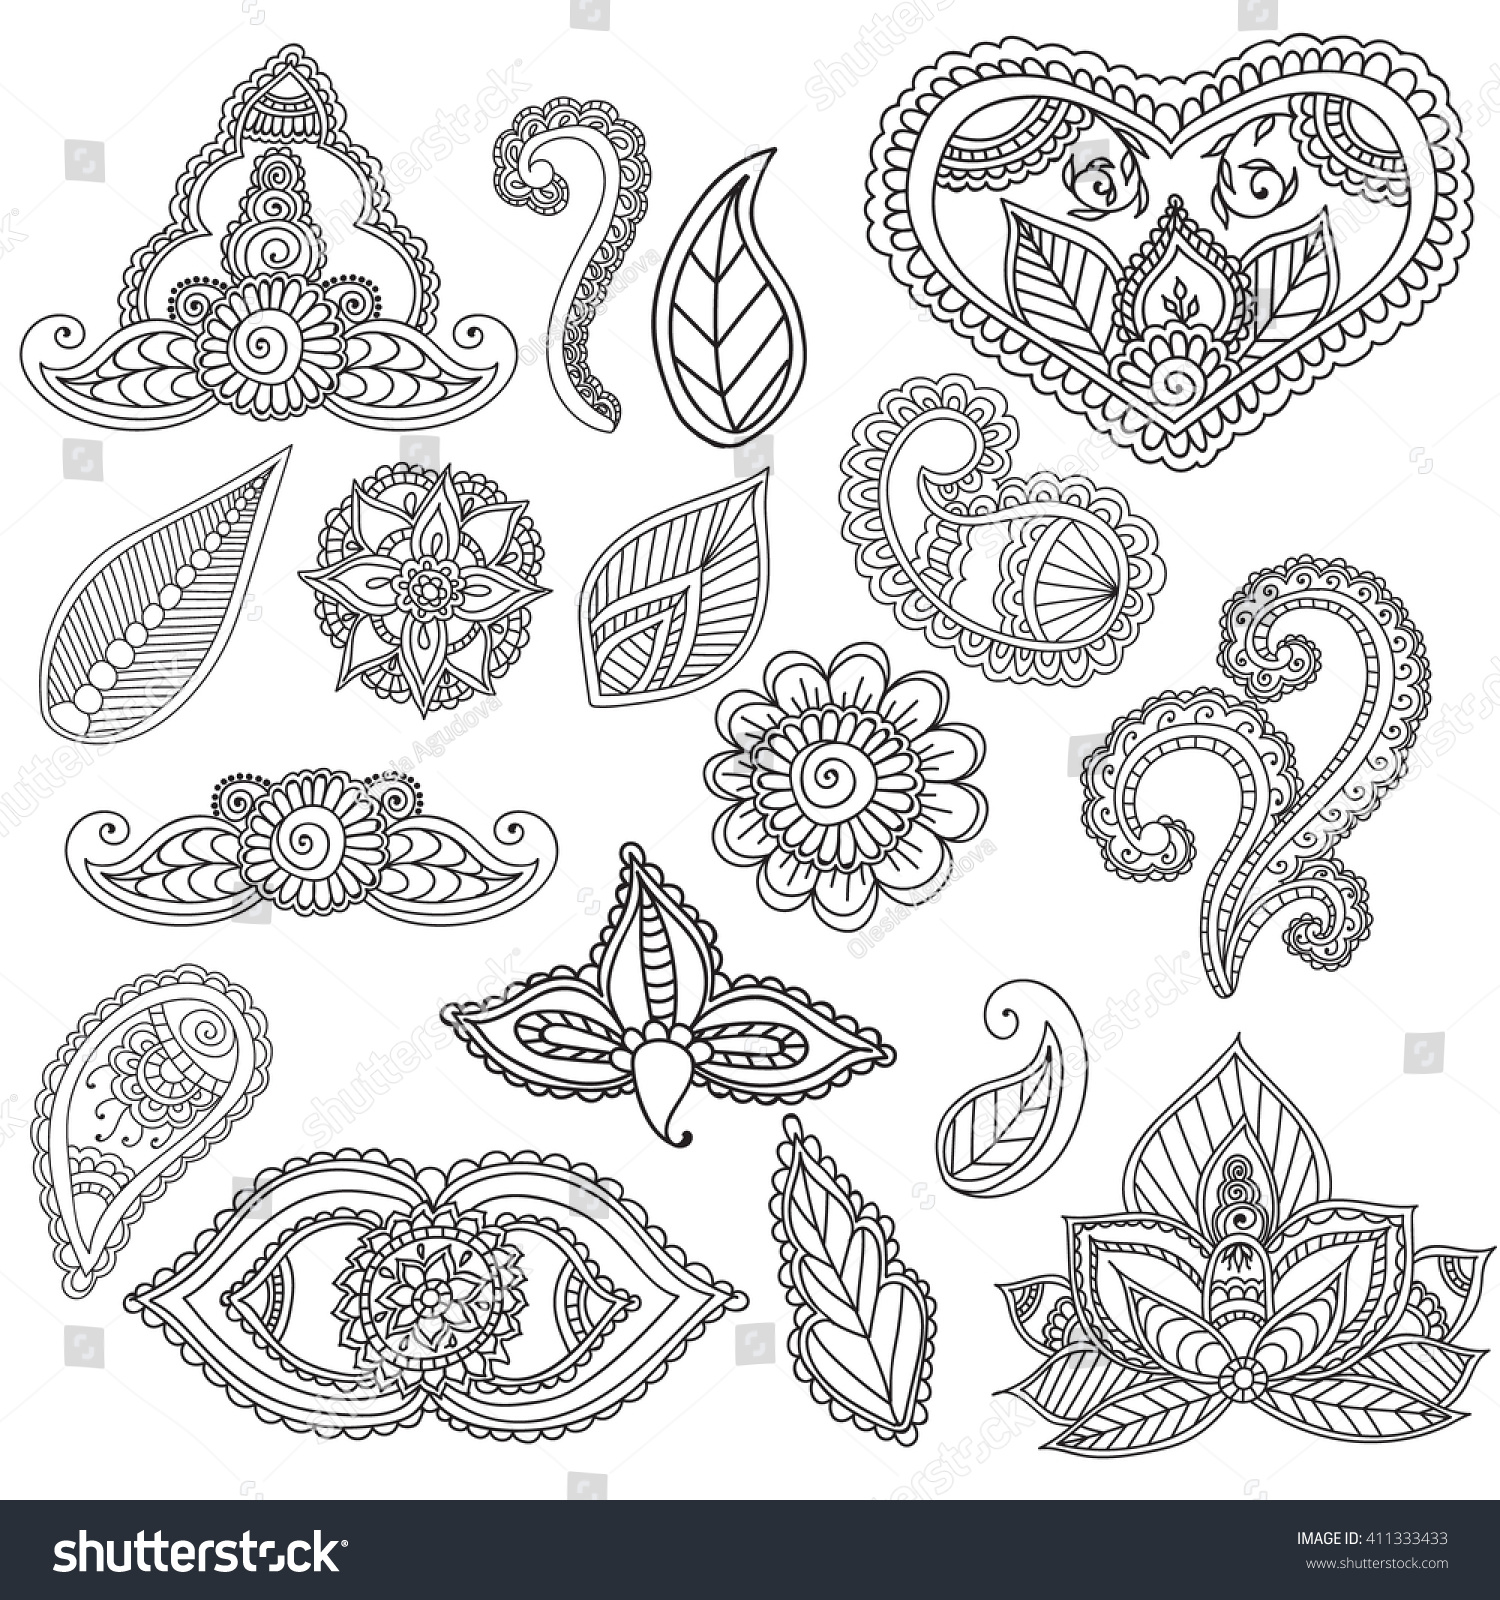 Coloring pages henna - Coloring Pages For Adults Set Fo Henna Mehndi Doodles Abstract Floral Paisley Design Elements